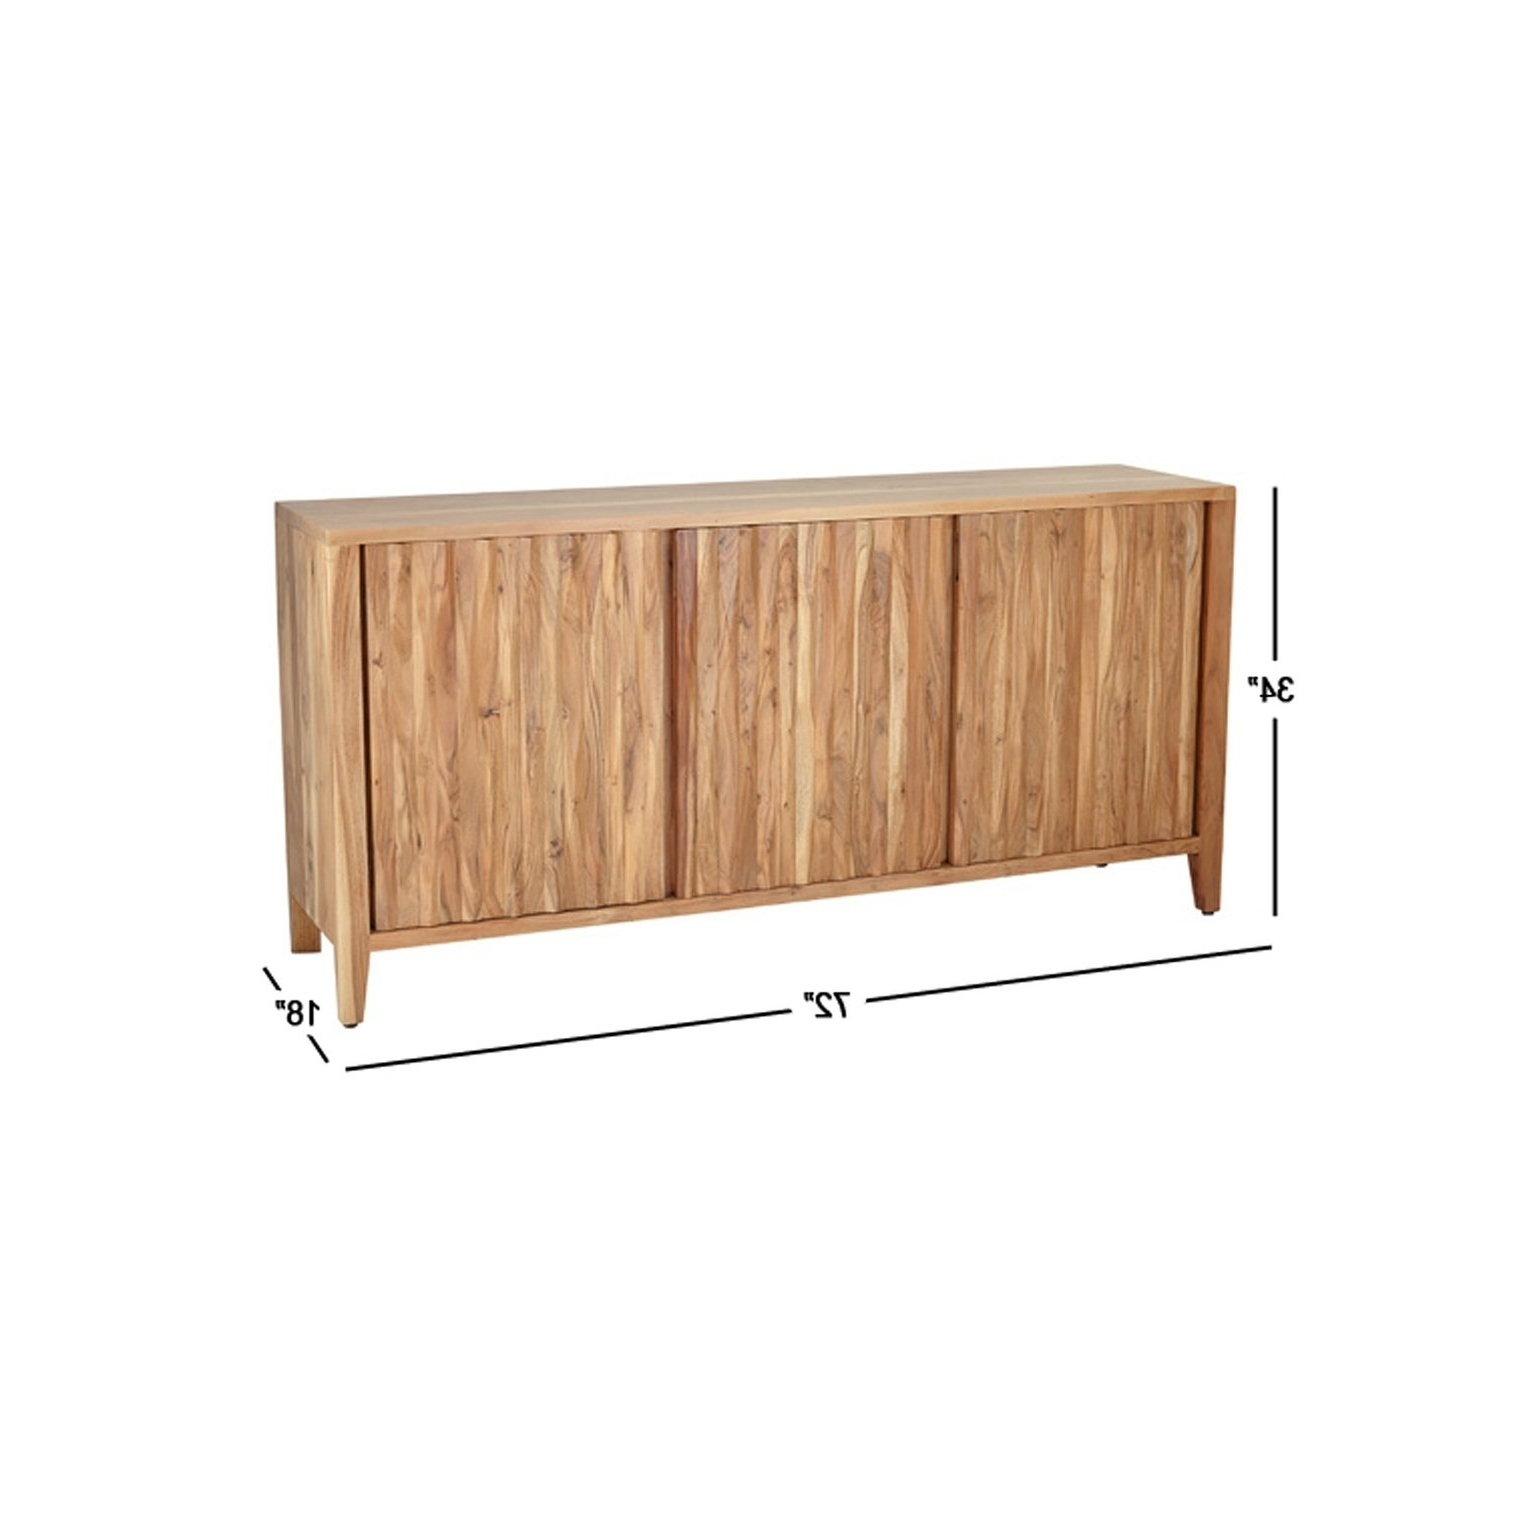 Well Known Brown Wood 72 Inch Sideboards Throughout Shop Rustic 34 X 72 Inch Brown Wooden Three Door Sideboard – On Sale (View 4 of 20)